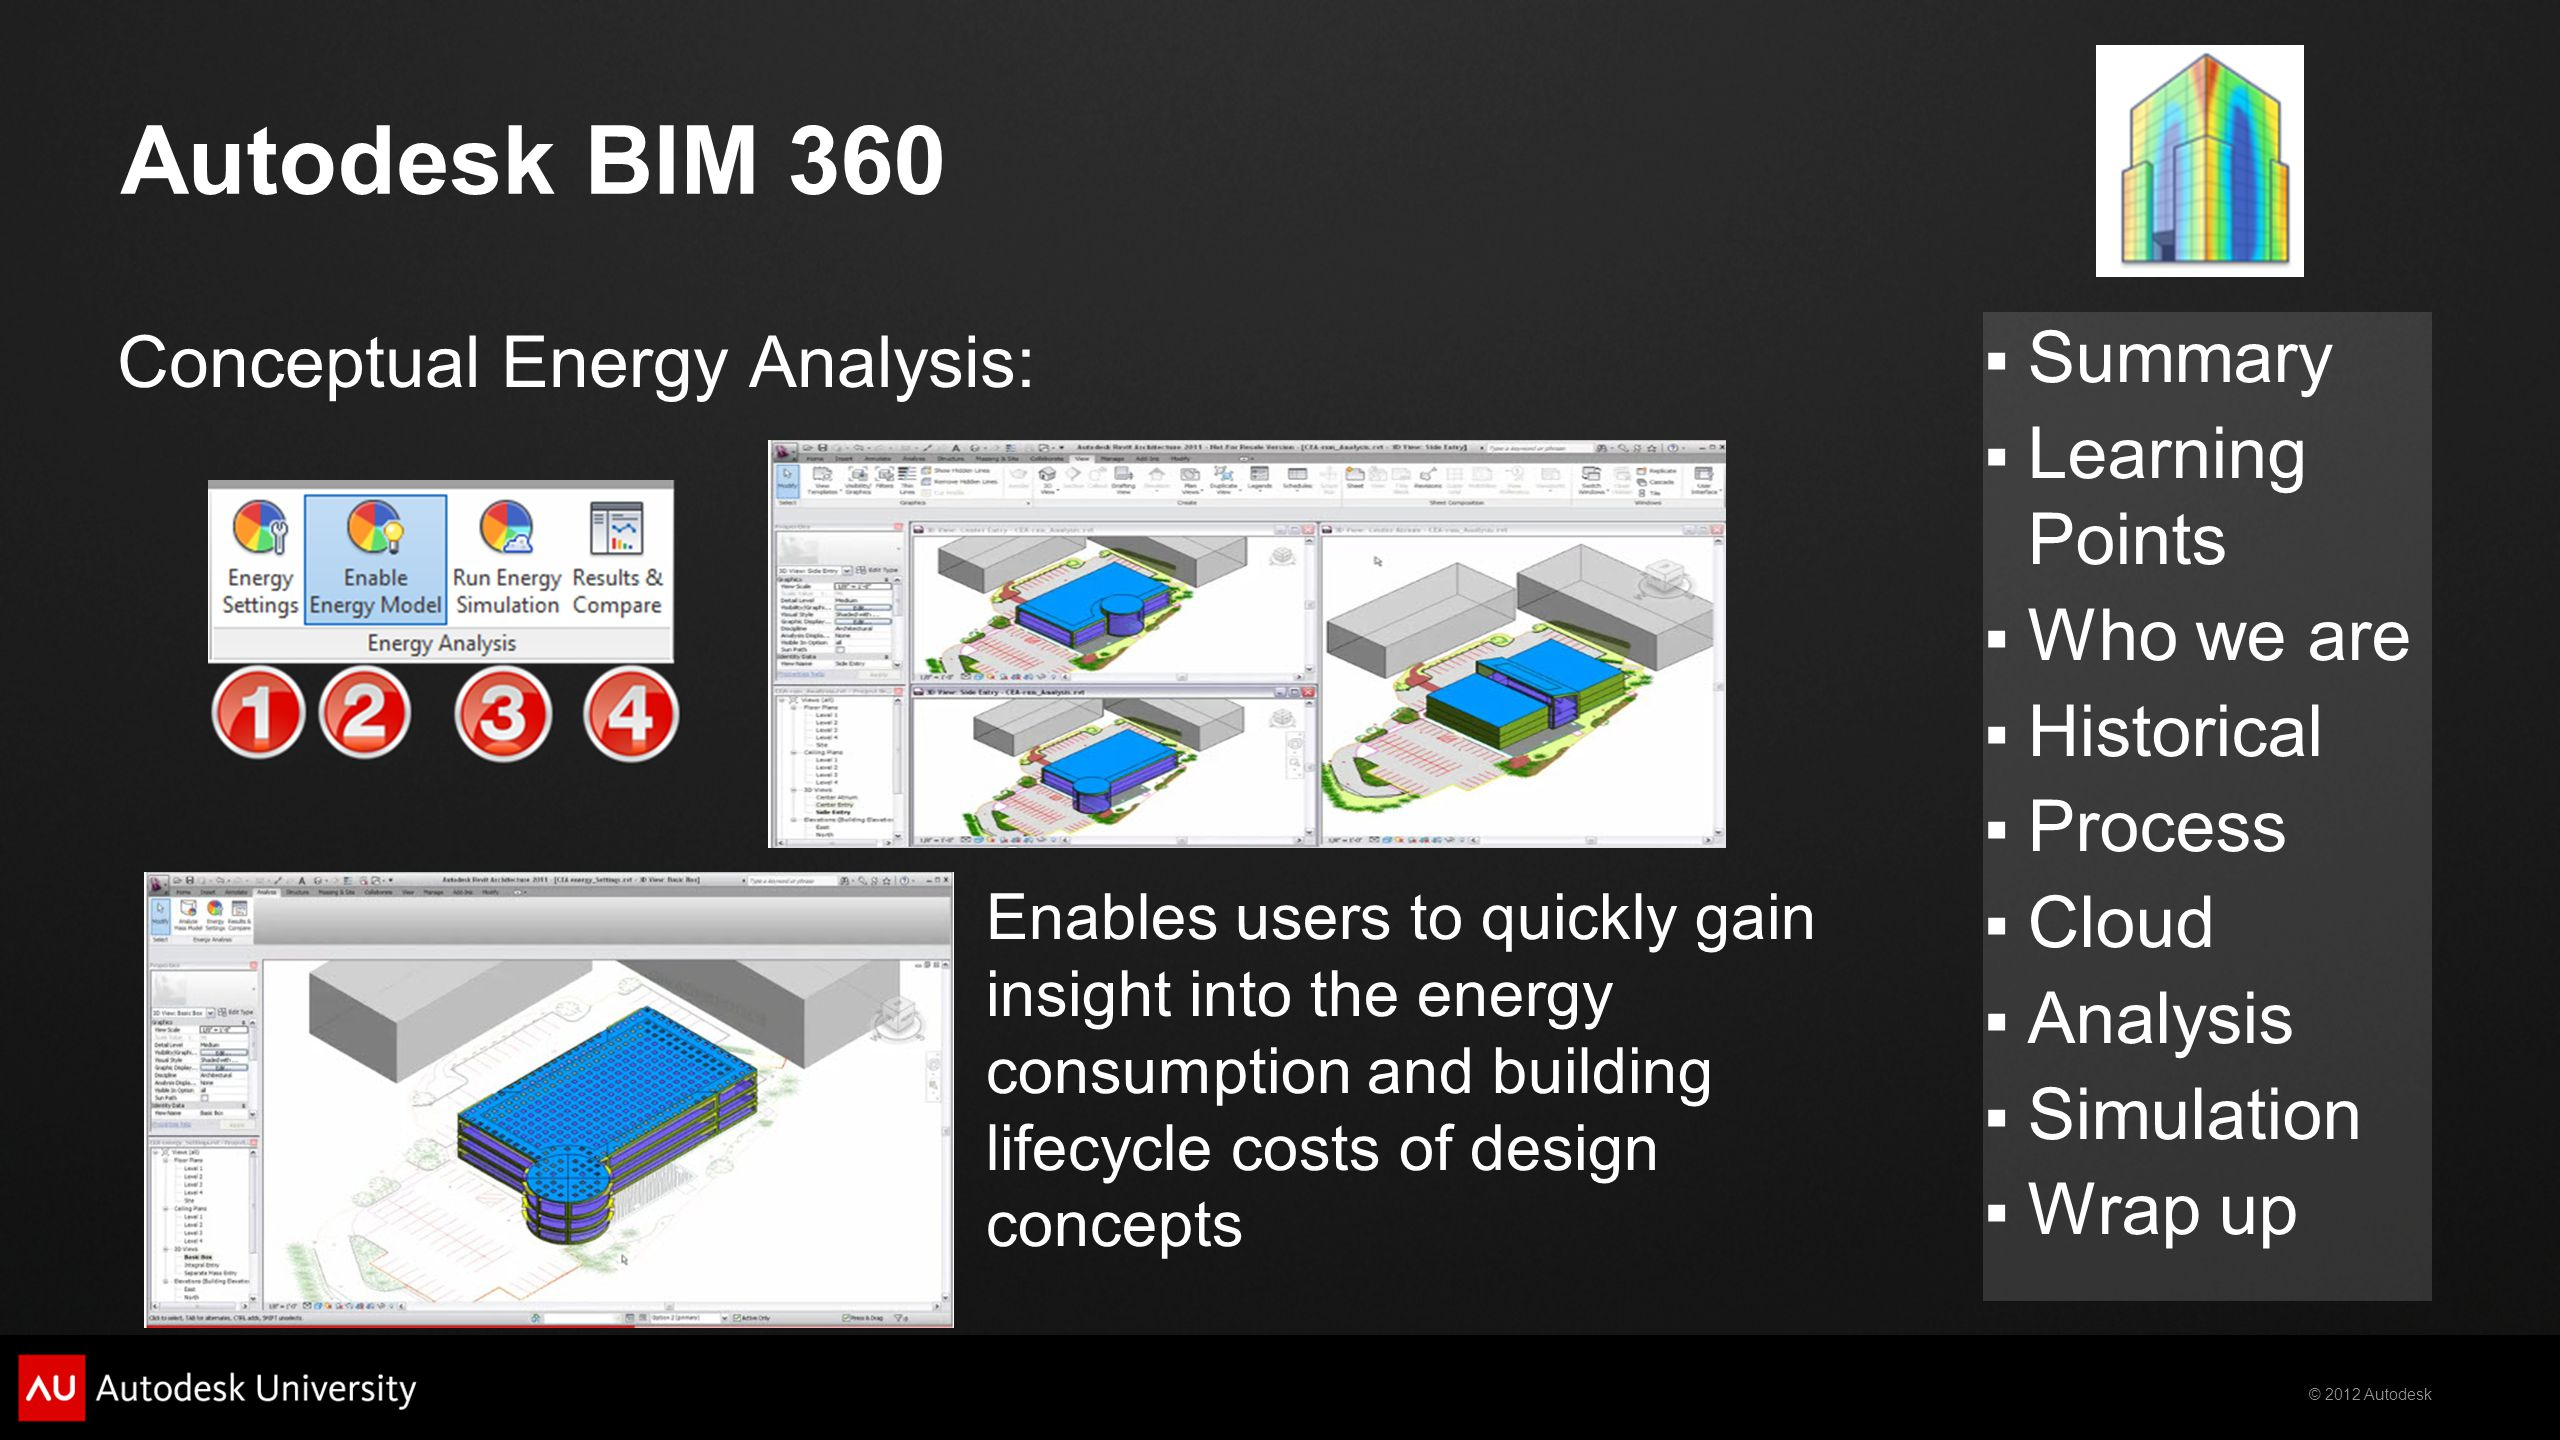 © 2012 Autodesk  Summary  Learning Points  Who we are  Historical  Process  Cloud  Analysis  Simulation  Wrap up Autodesk BIM 360 Conceptual Energy Analysis: Enables users to quickly gain insight into the energy consumption and building lifecycle costs of design concepts